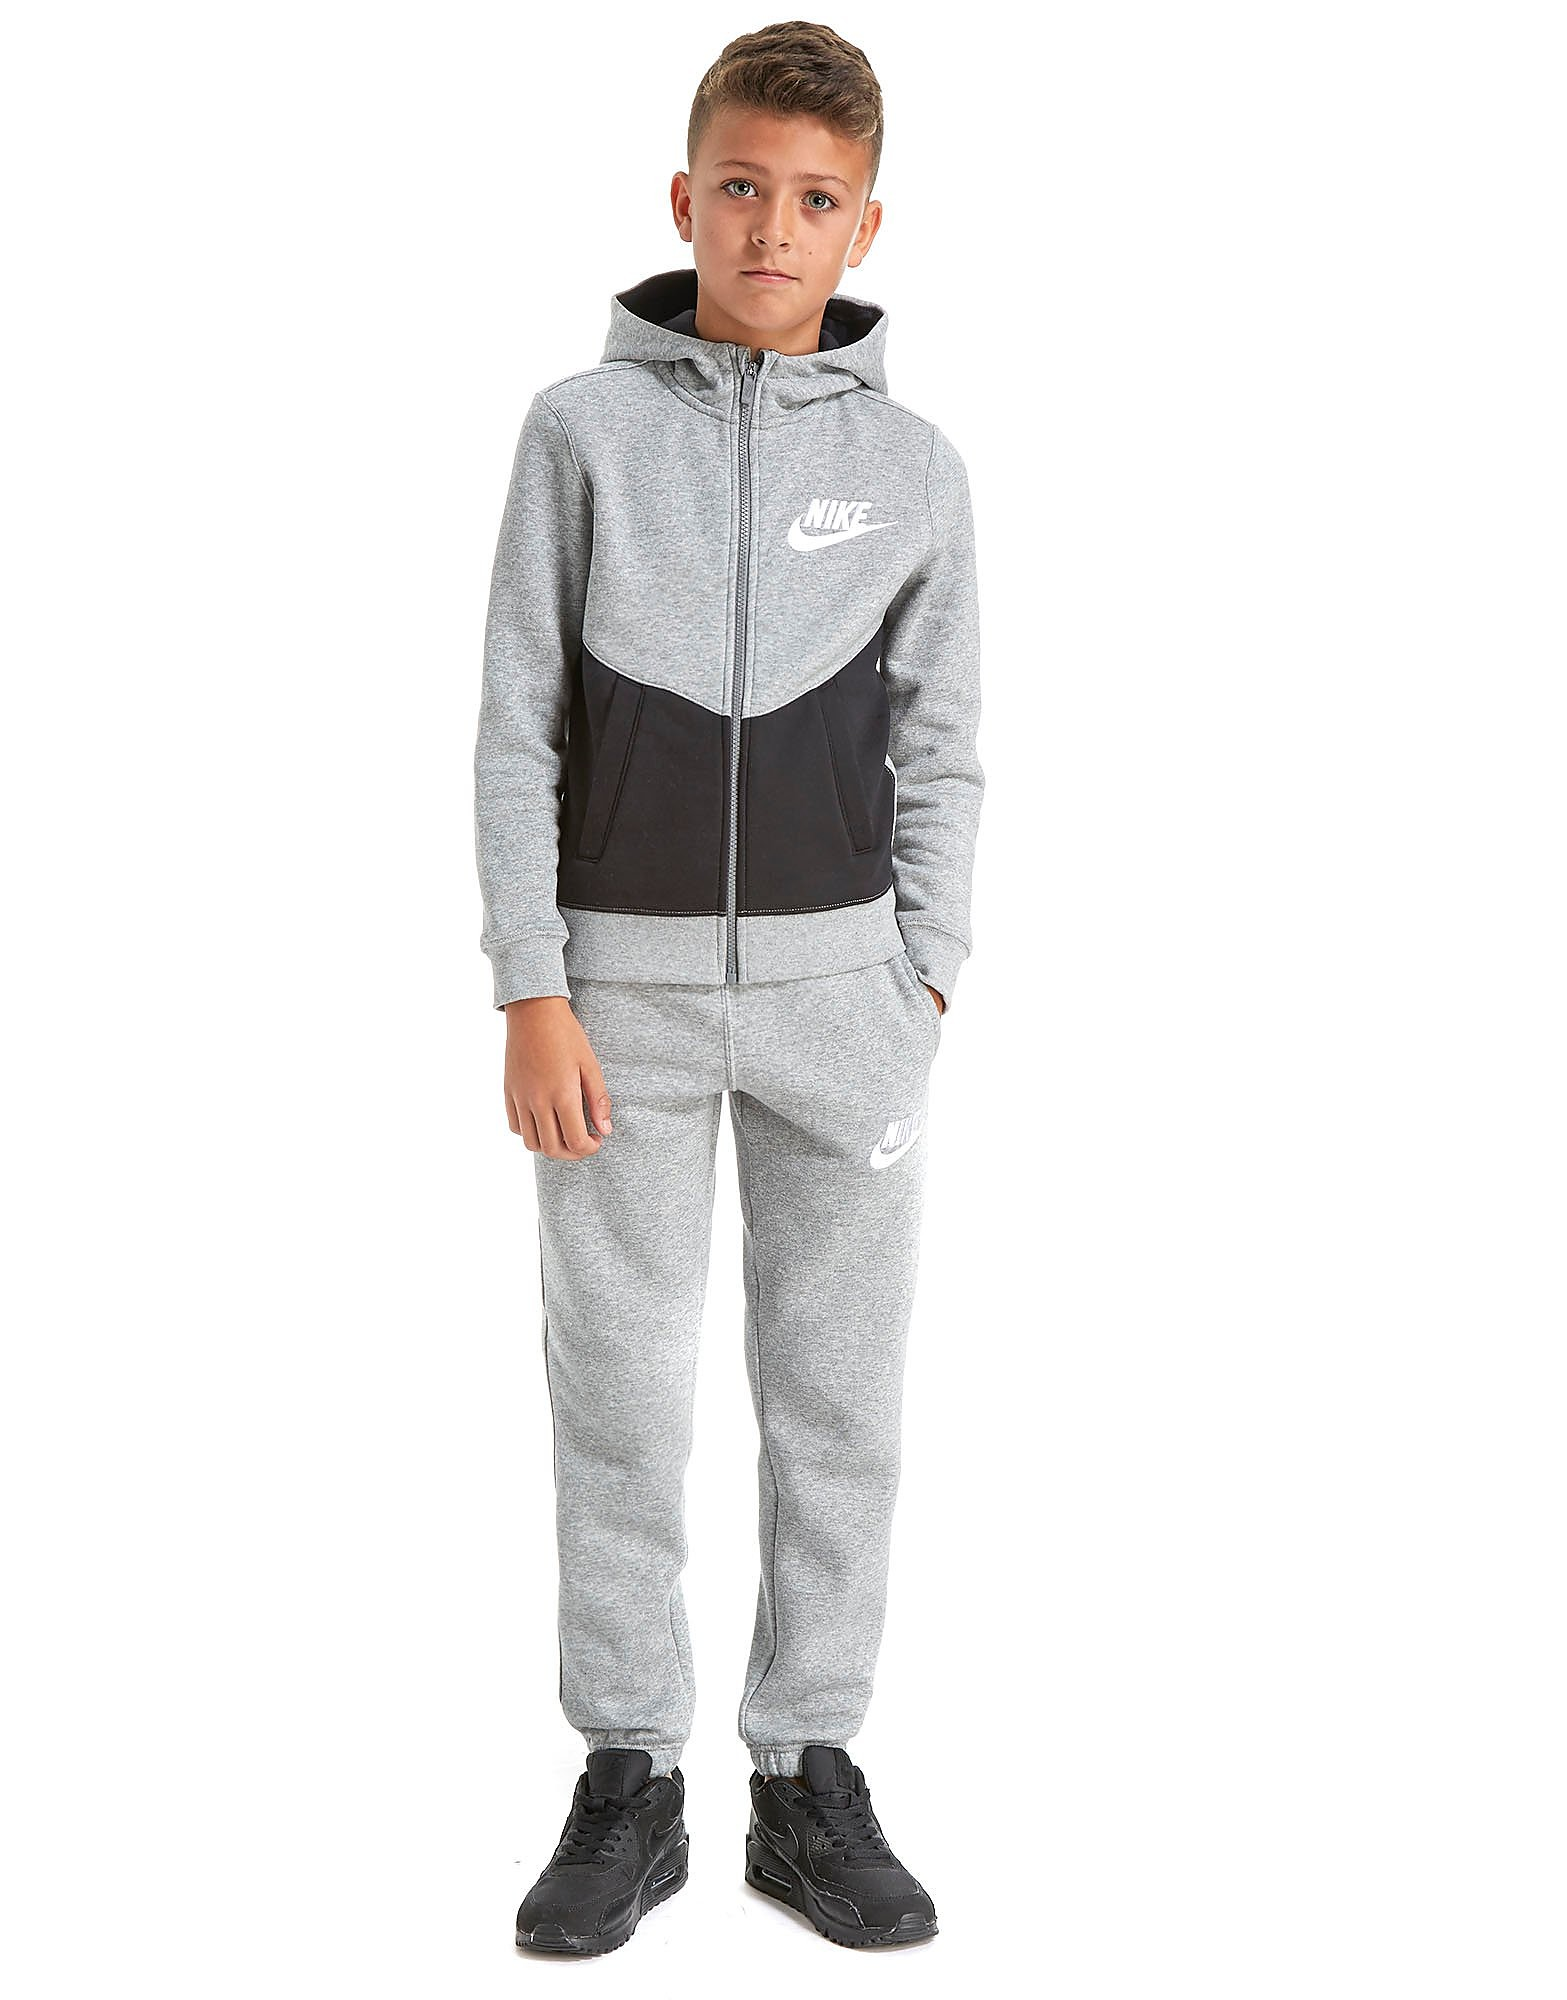 Nike chándal Fleece júnior